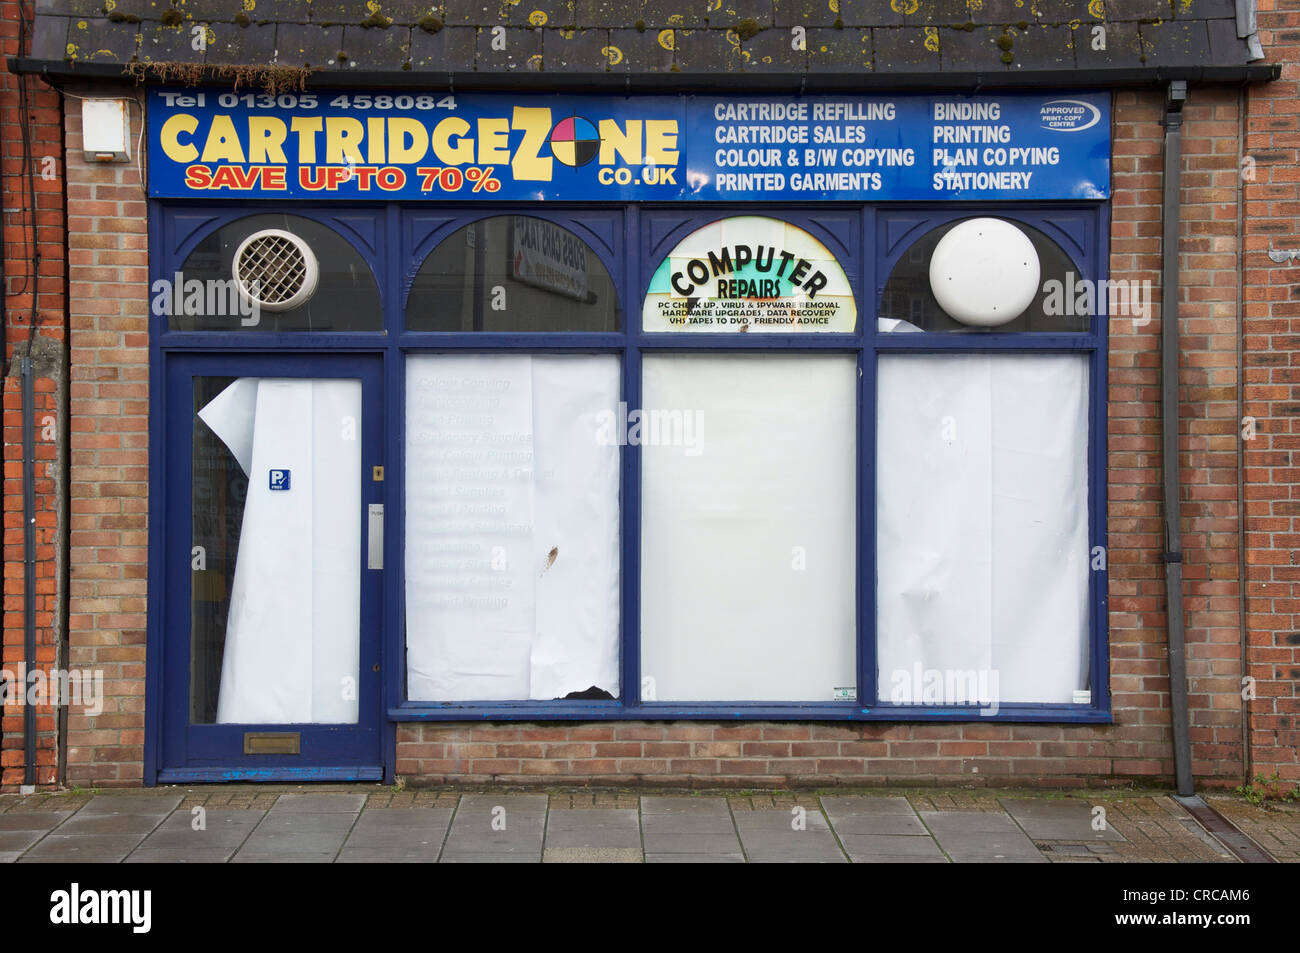 A provider of copying and printing services, closed down, just another of the many high street casualties of the Stock Photo